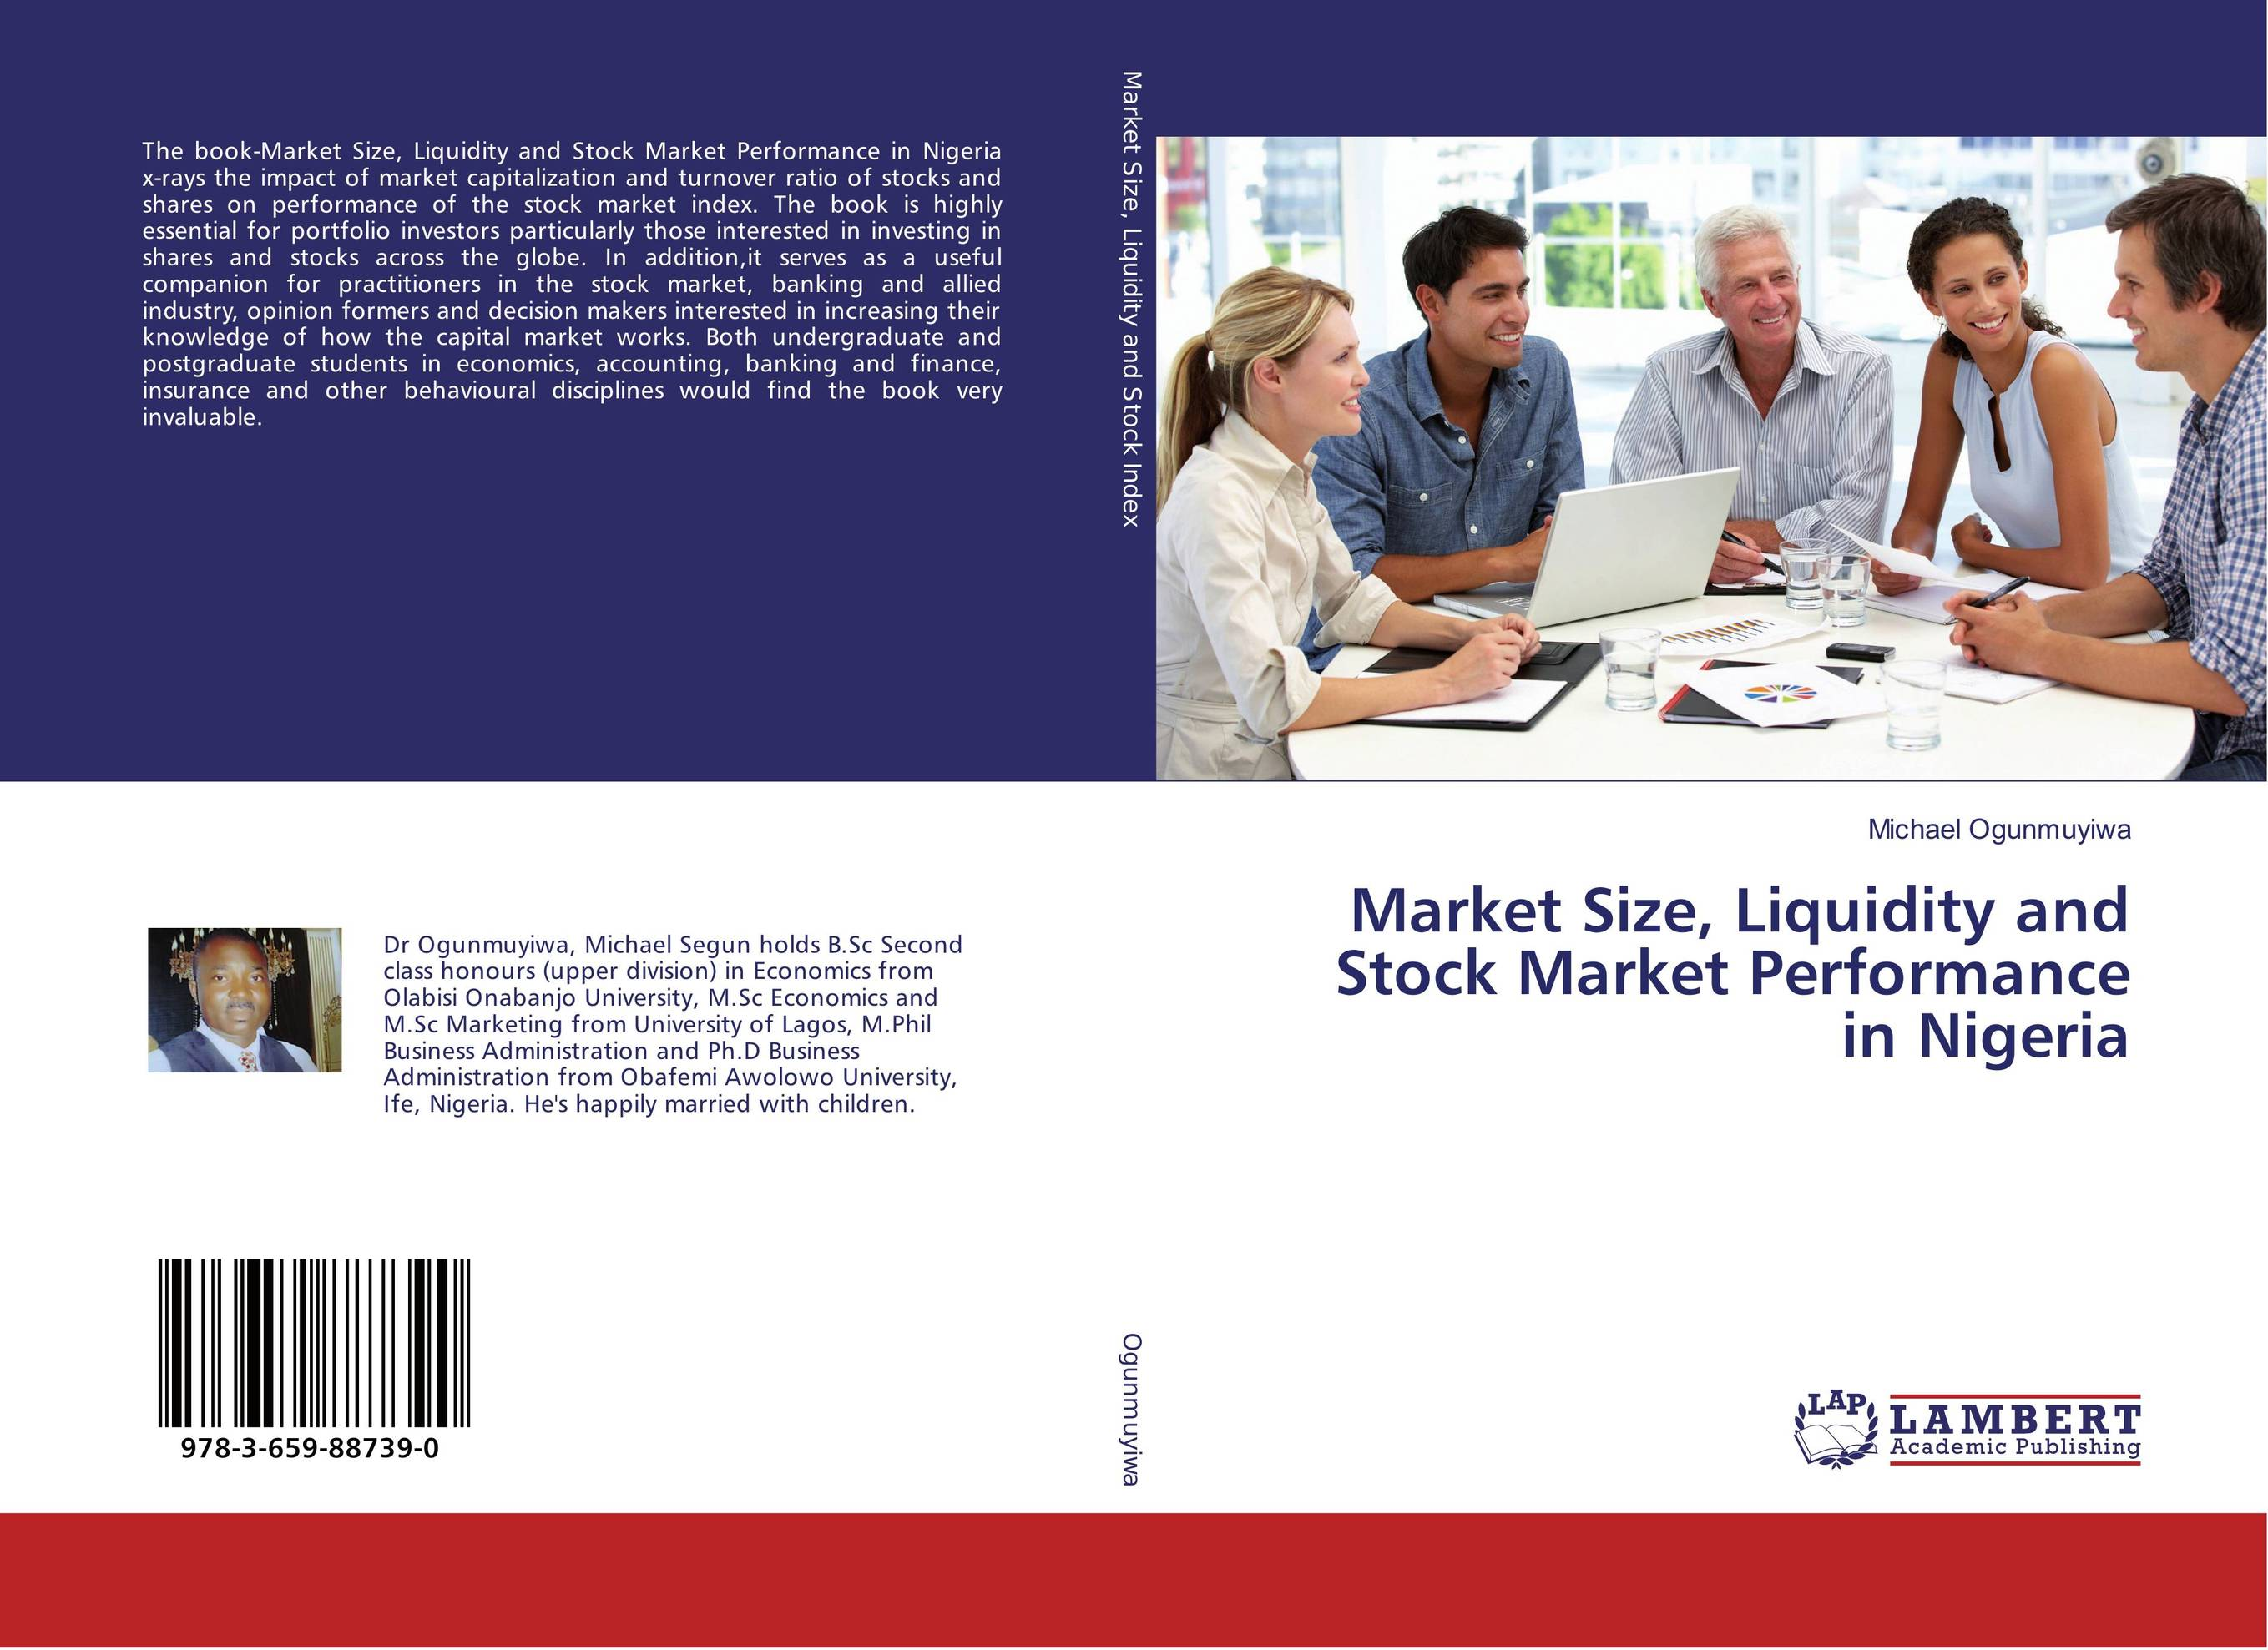 Market Size, Liquidity and Stock Market Performance in Nigeria